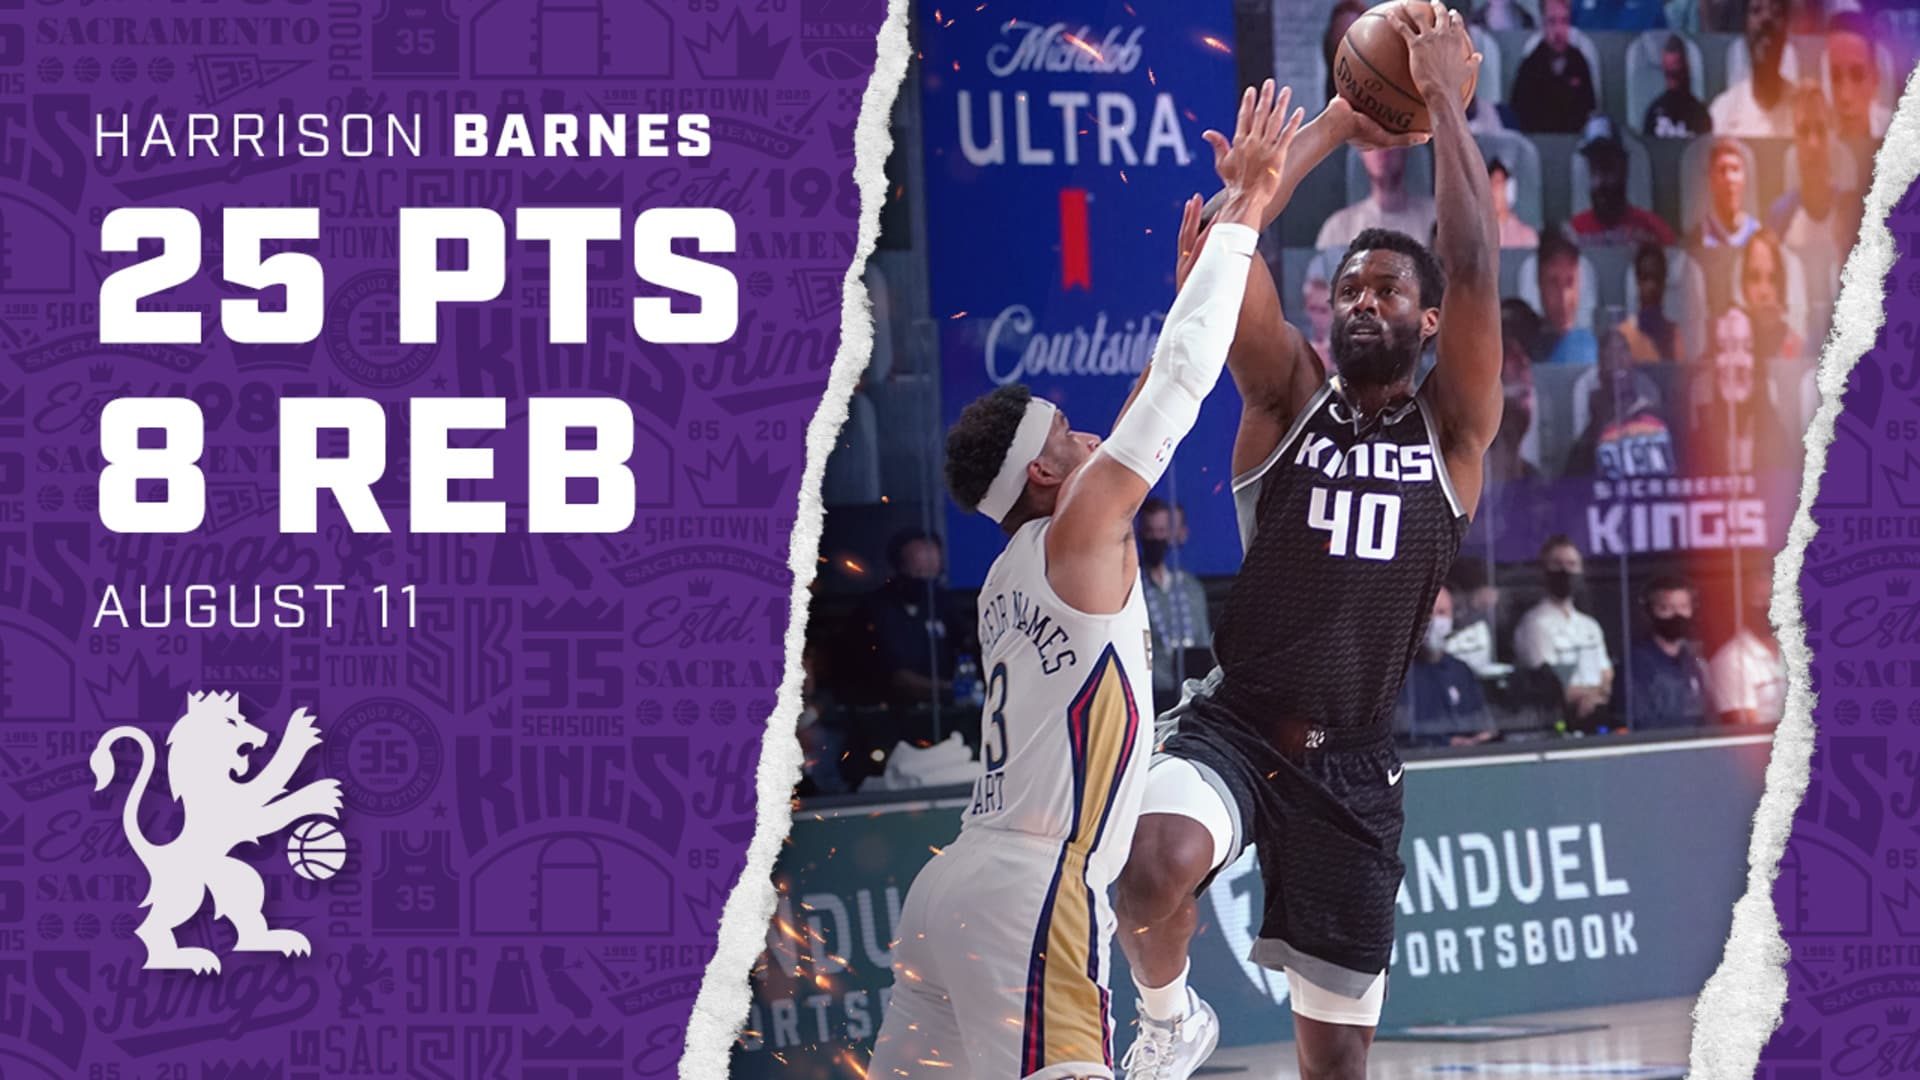 HB was an All-Around Force in the Matchup | Kings vs Pelicans 8.11.20